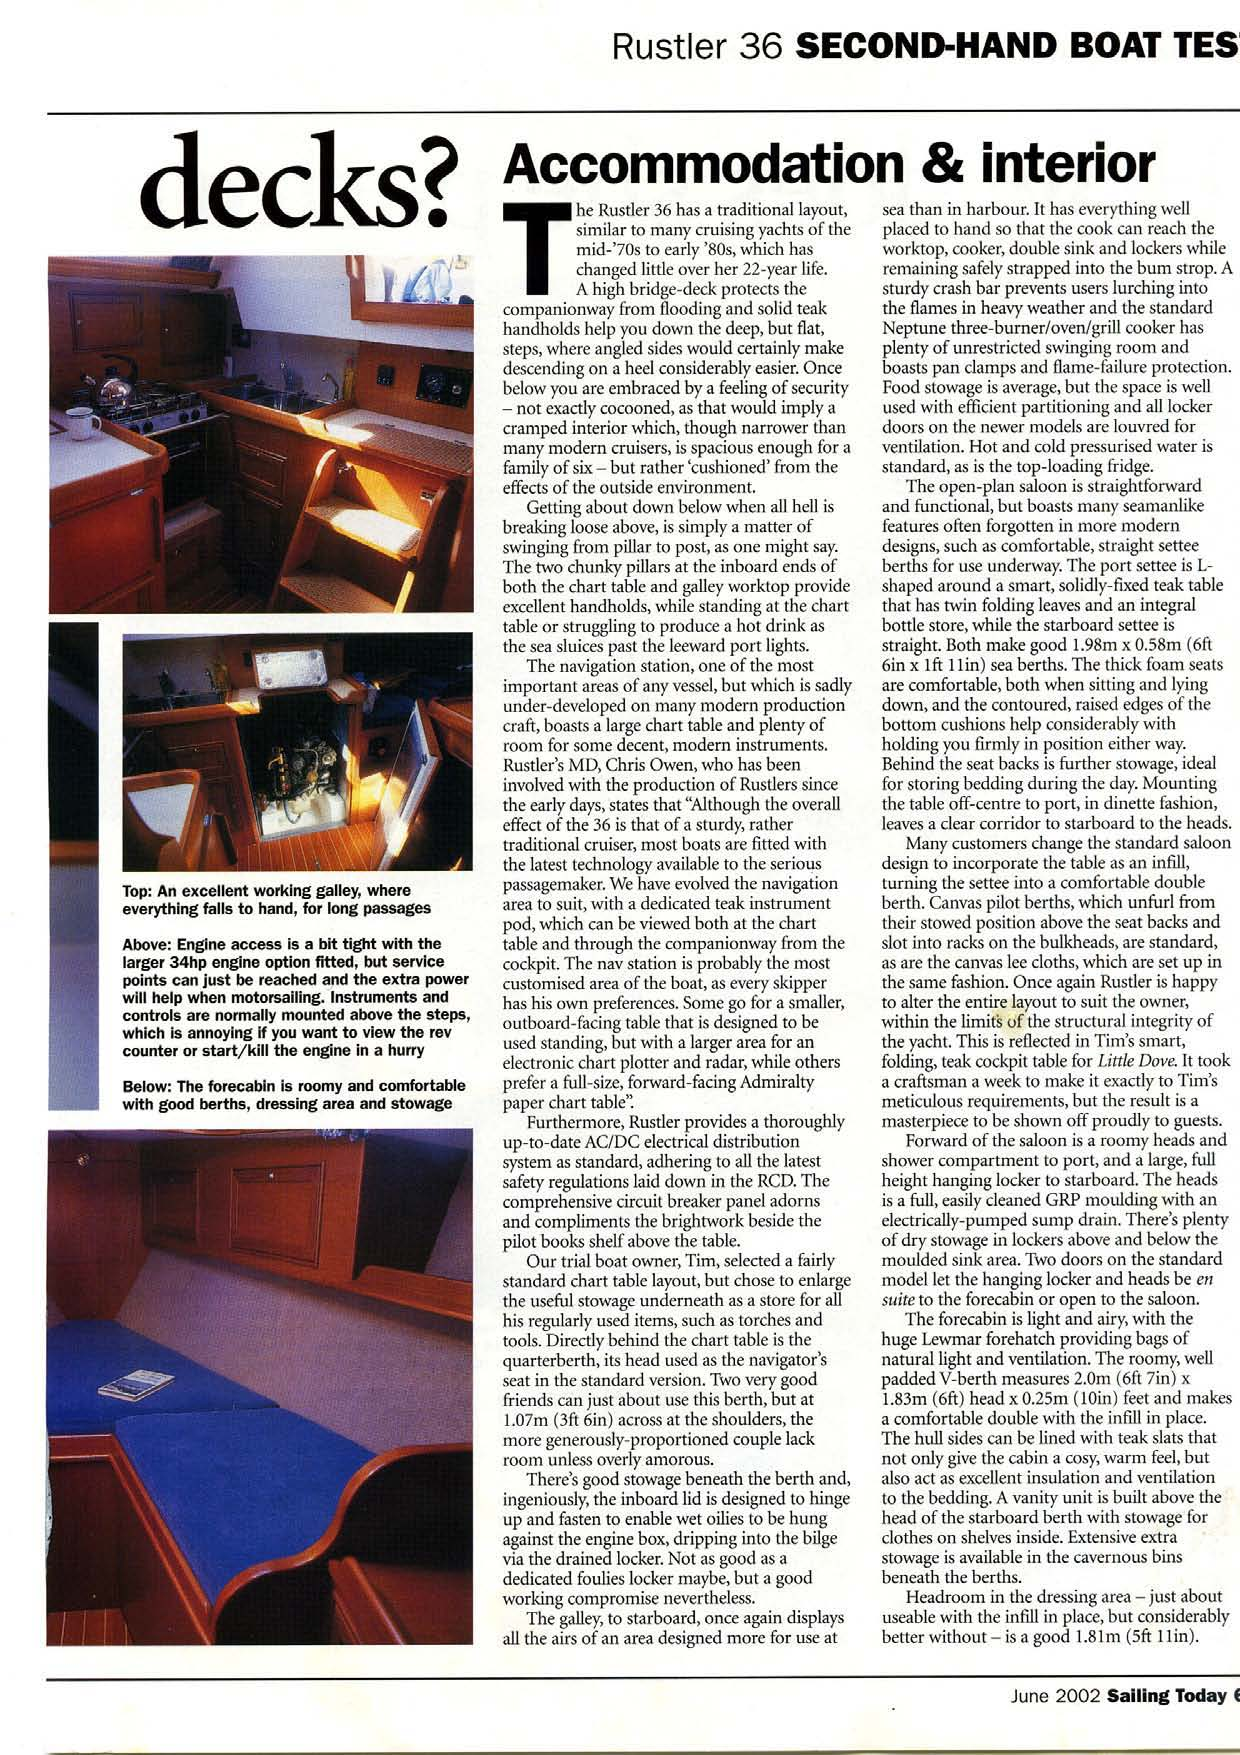 Rustler-36-review-ST62-June-2002-Sailor Today Pagina 5.jpg